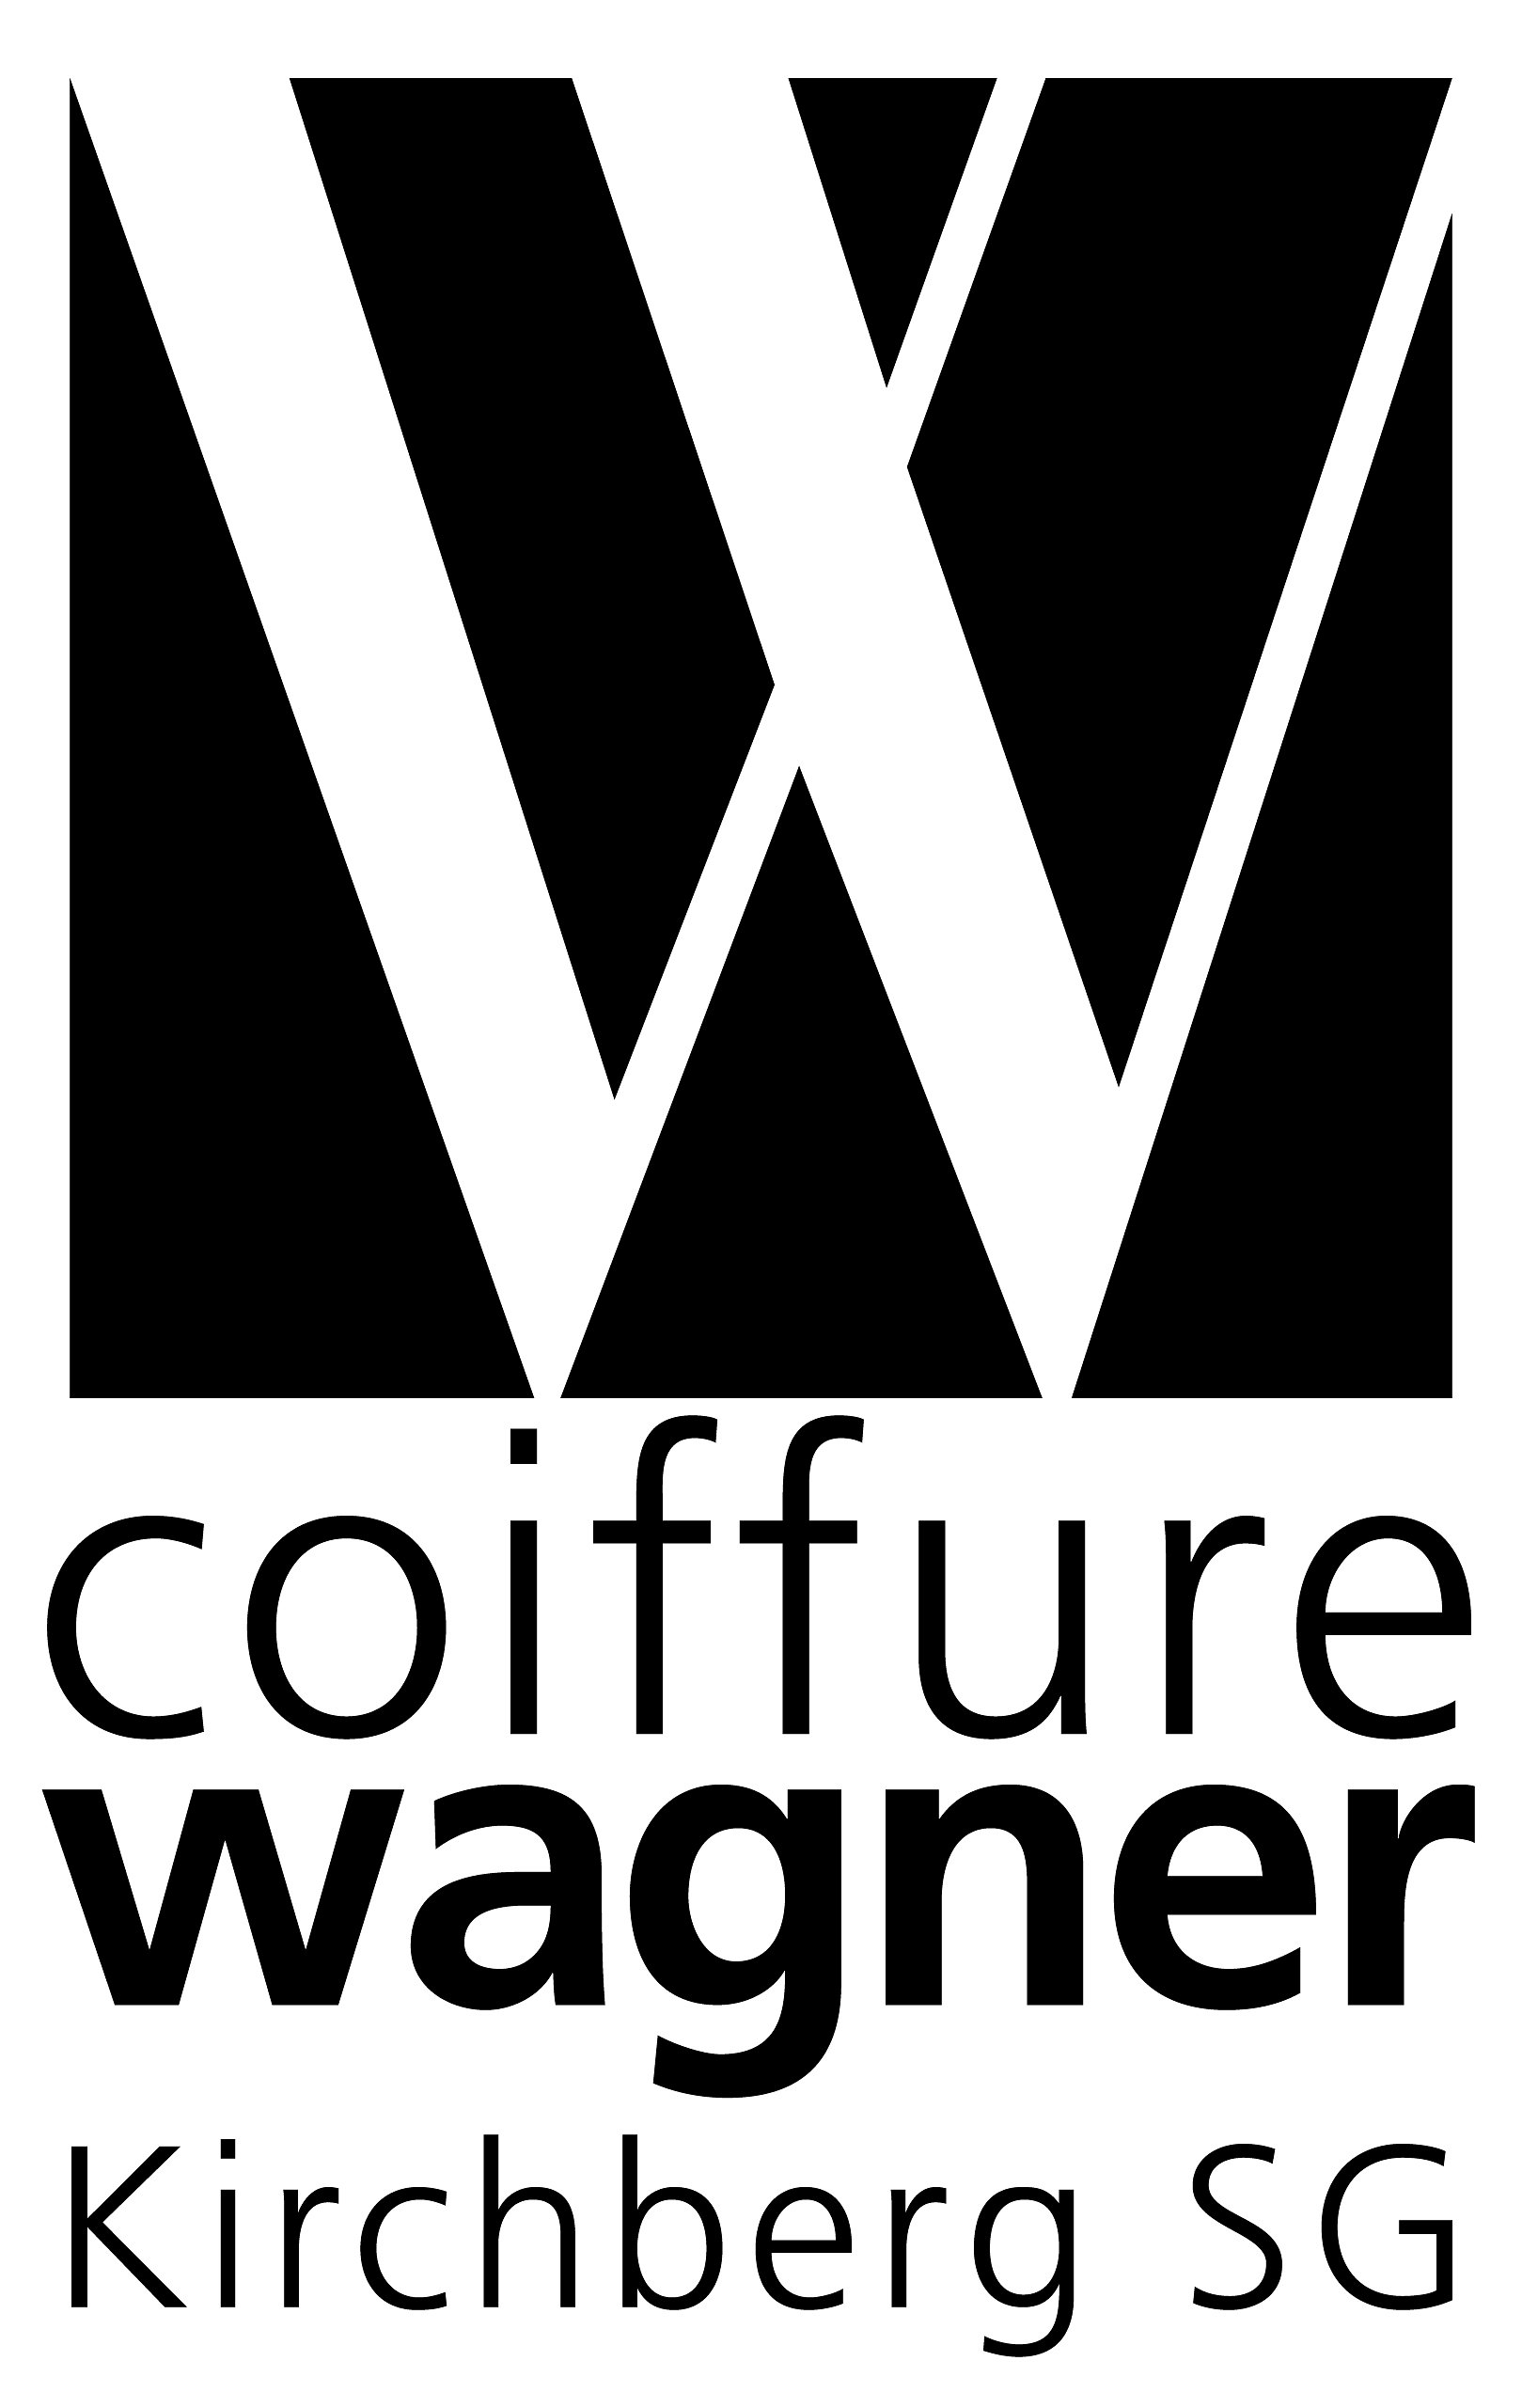 Coiffure Wagner